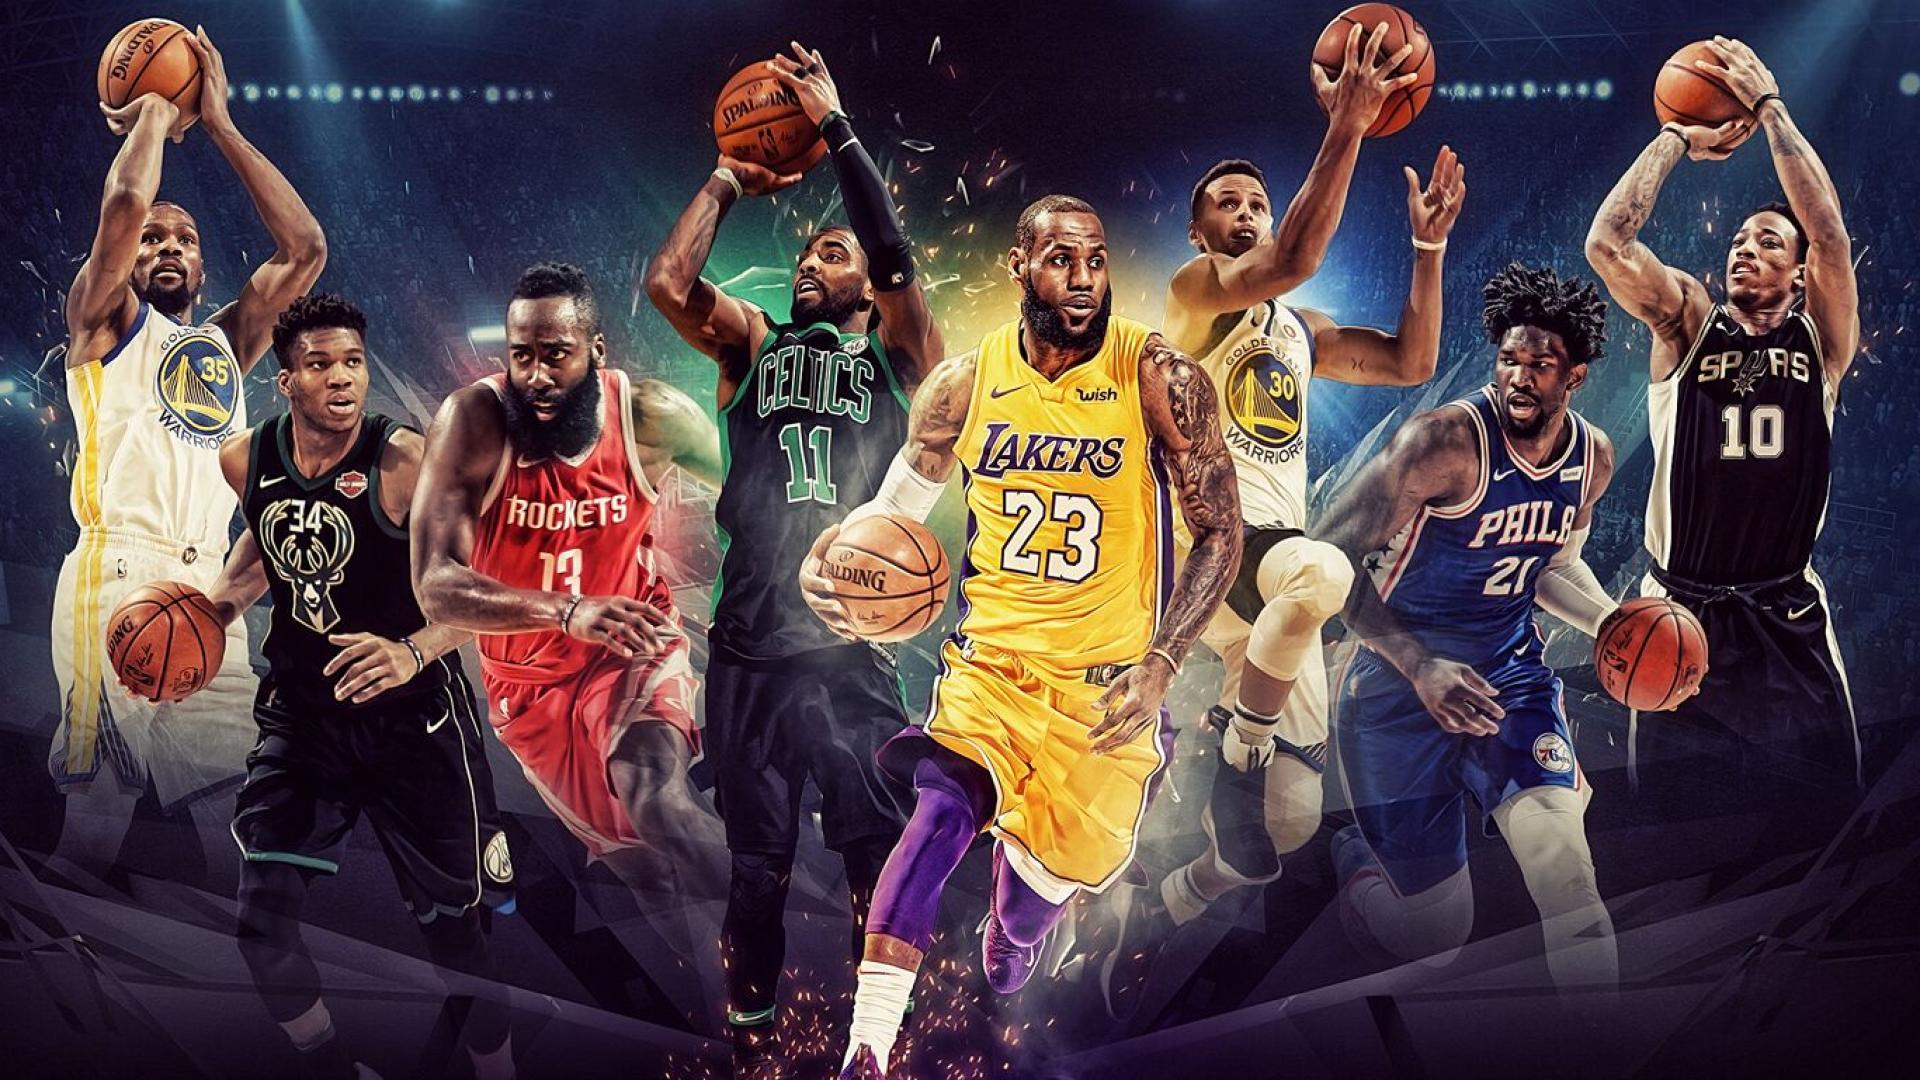 a7eda5f8613db NBA unveils full 2018-19 season schedule | NBA.com